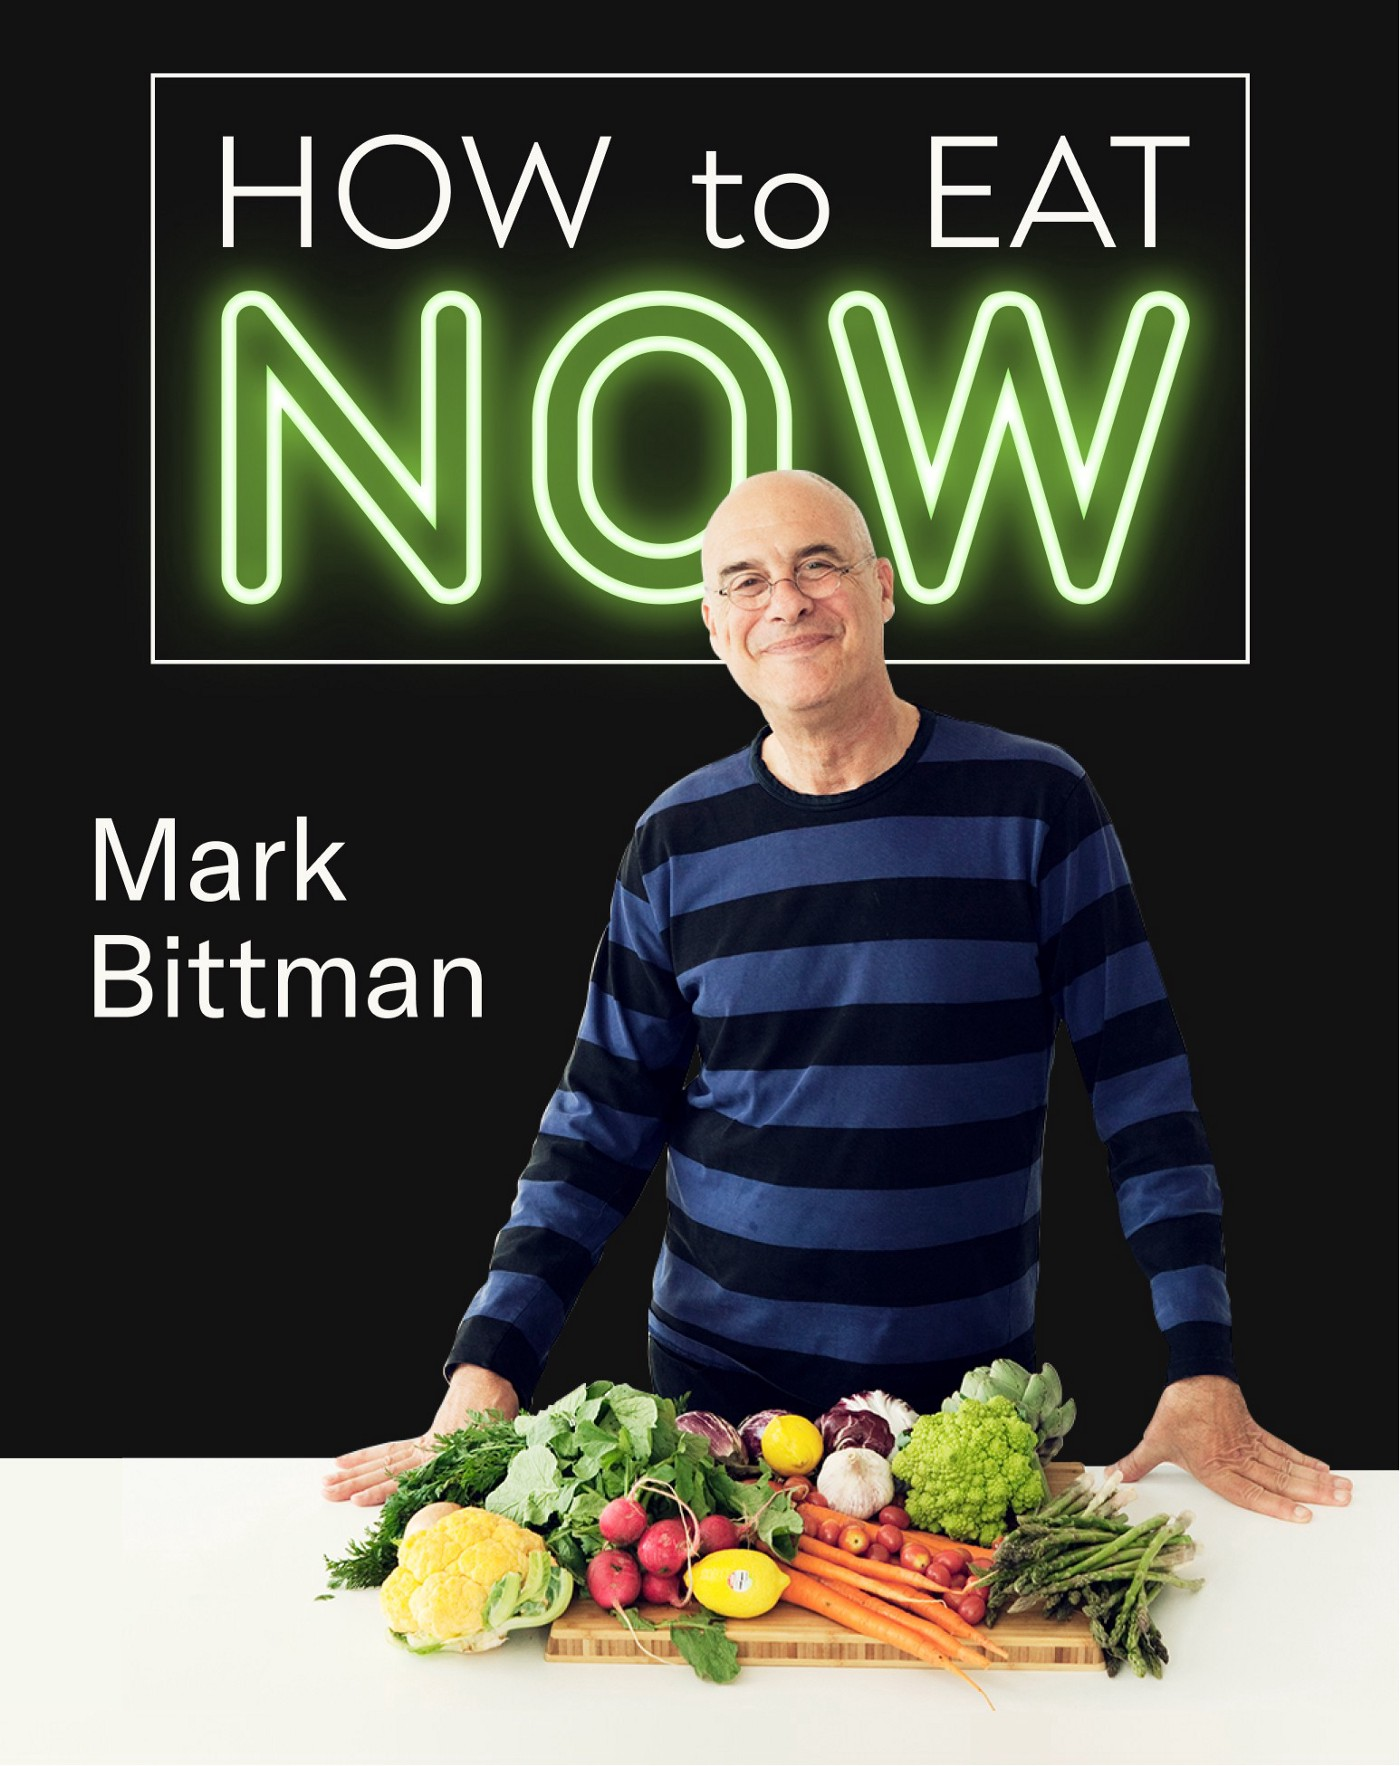 Bittman and the How to Eat Now backdrop